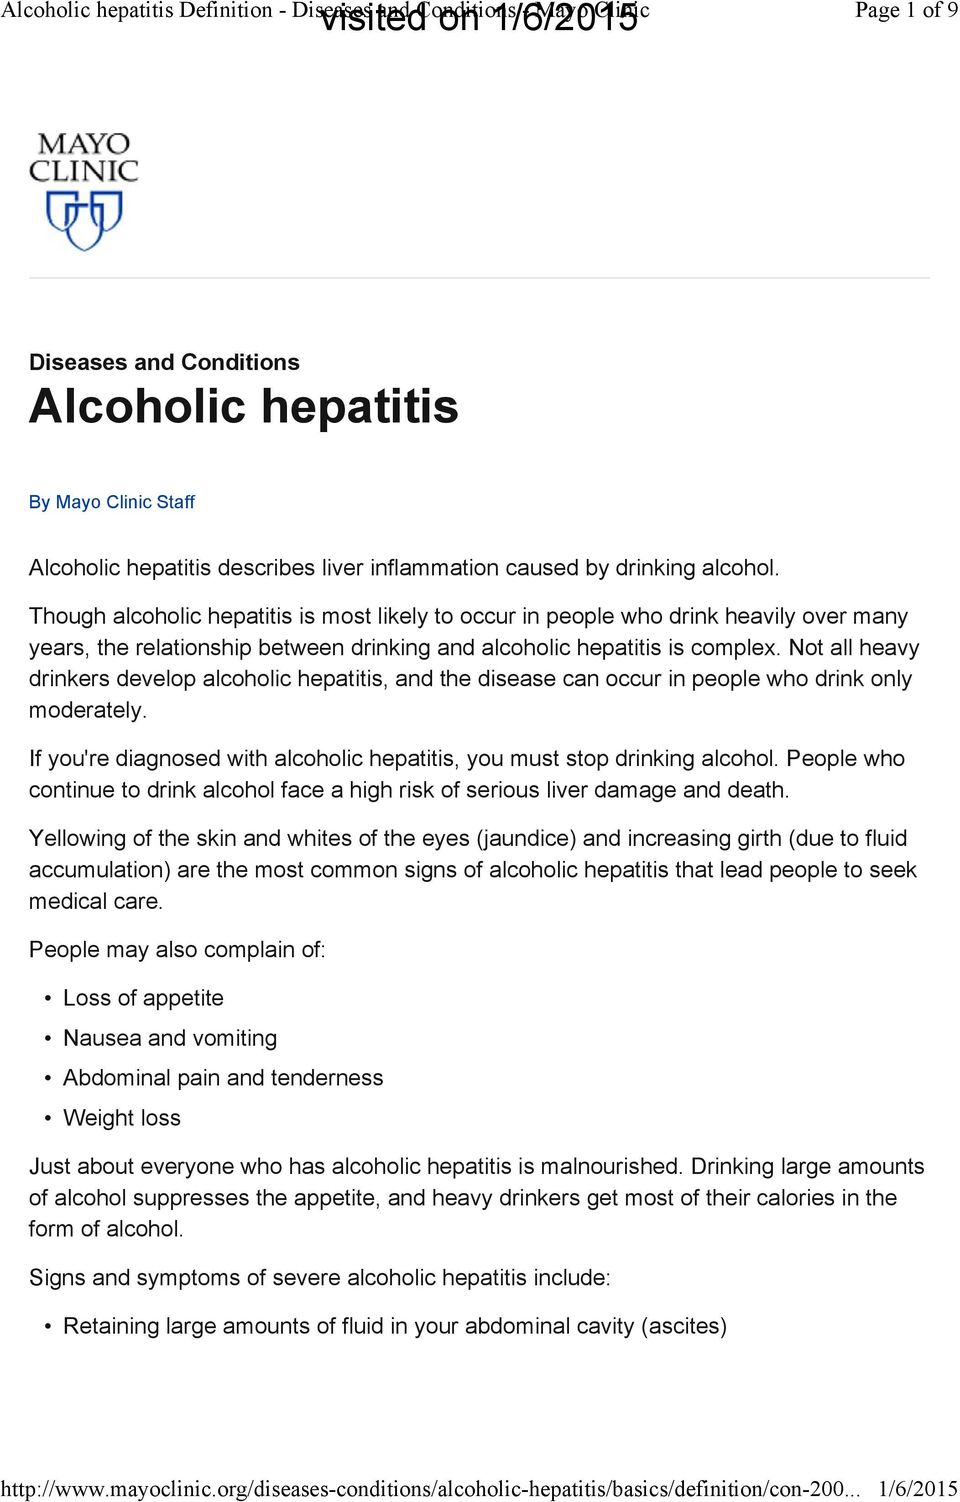 Not all heavy drinkers develop alcoholic hepatitis, and the disease can occur in people who drink only moderately. If you're diagnosed with alcoholic hepatitis, you must stop drinking alcohol.